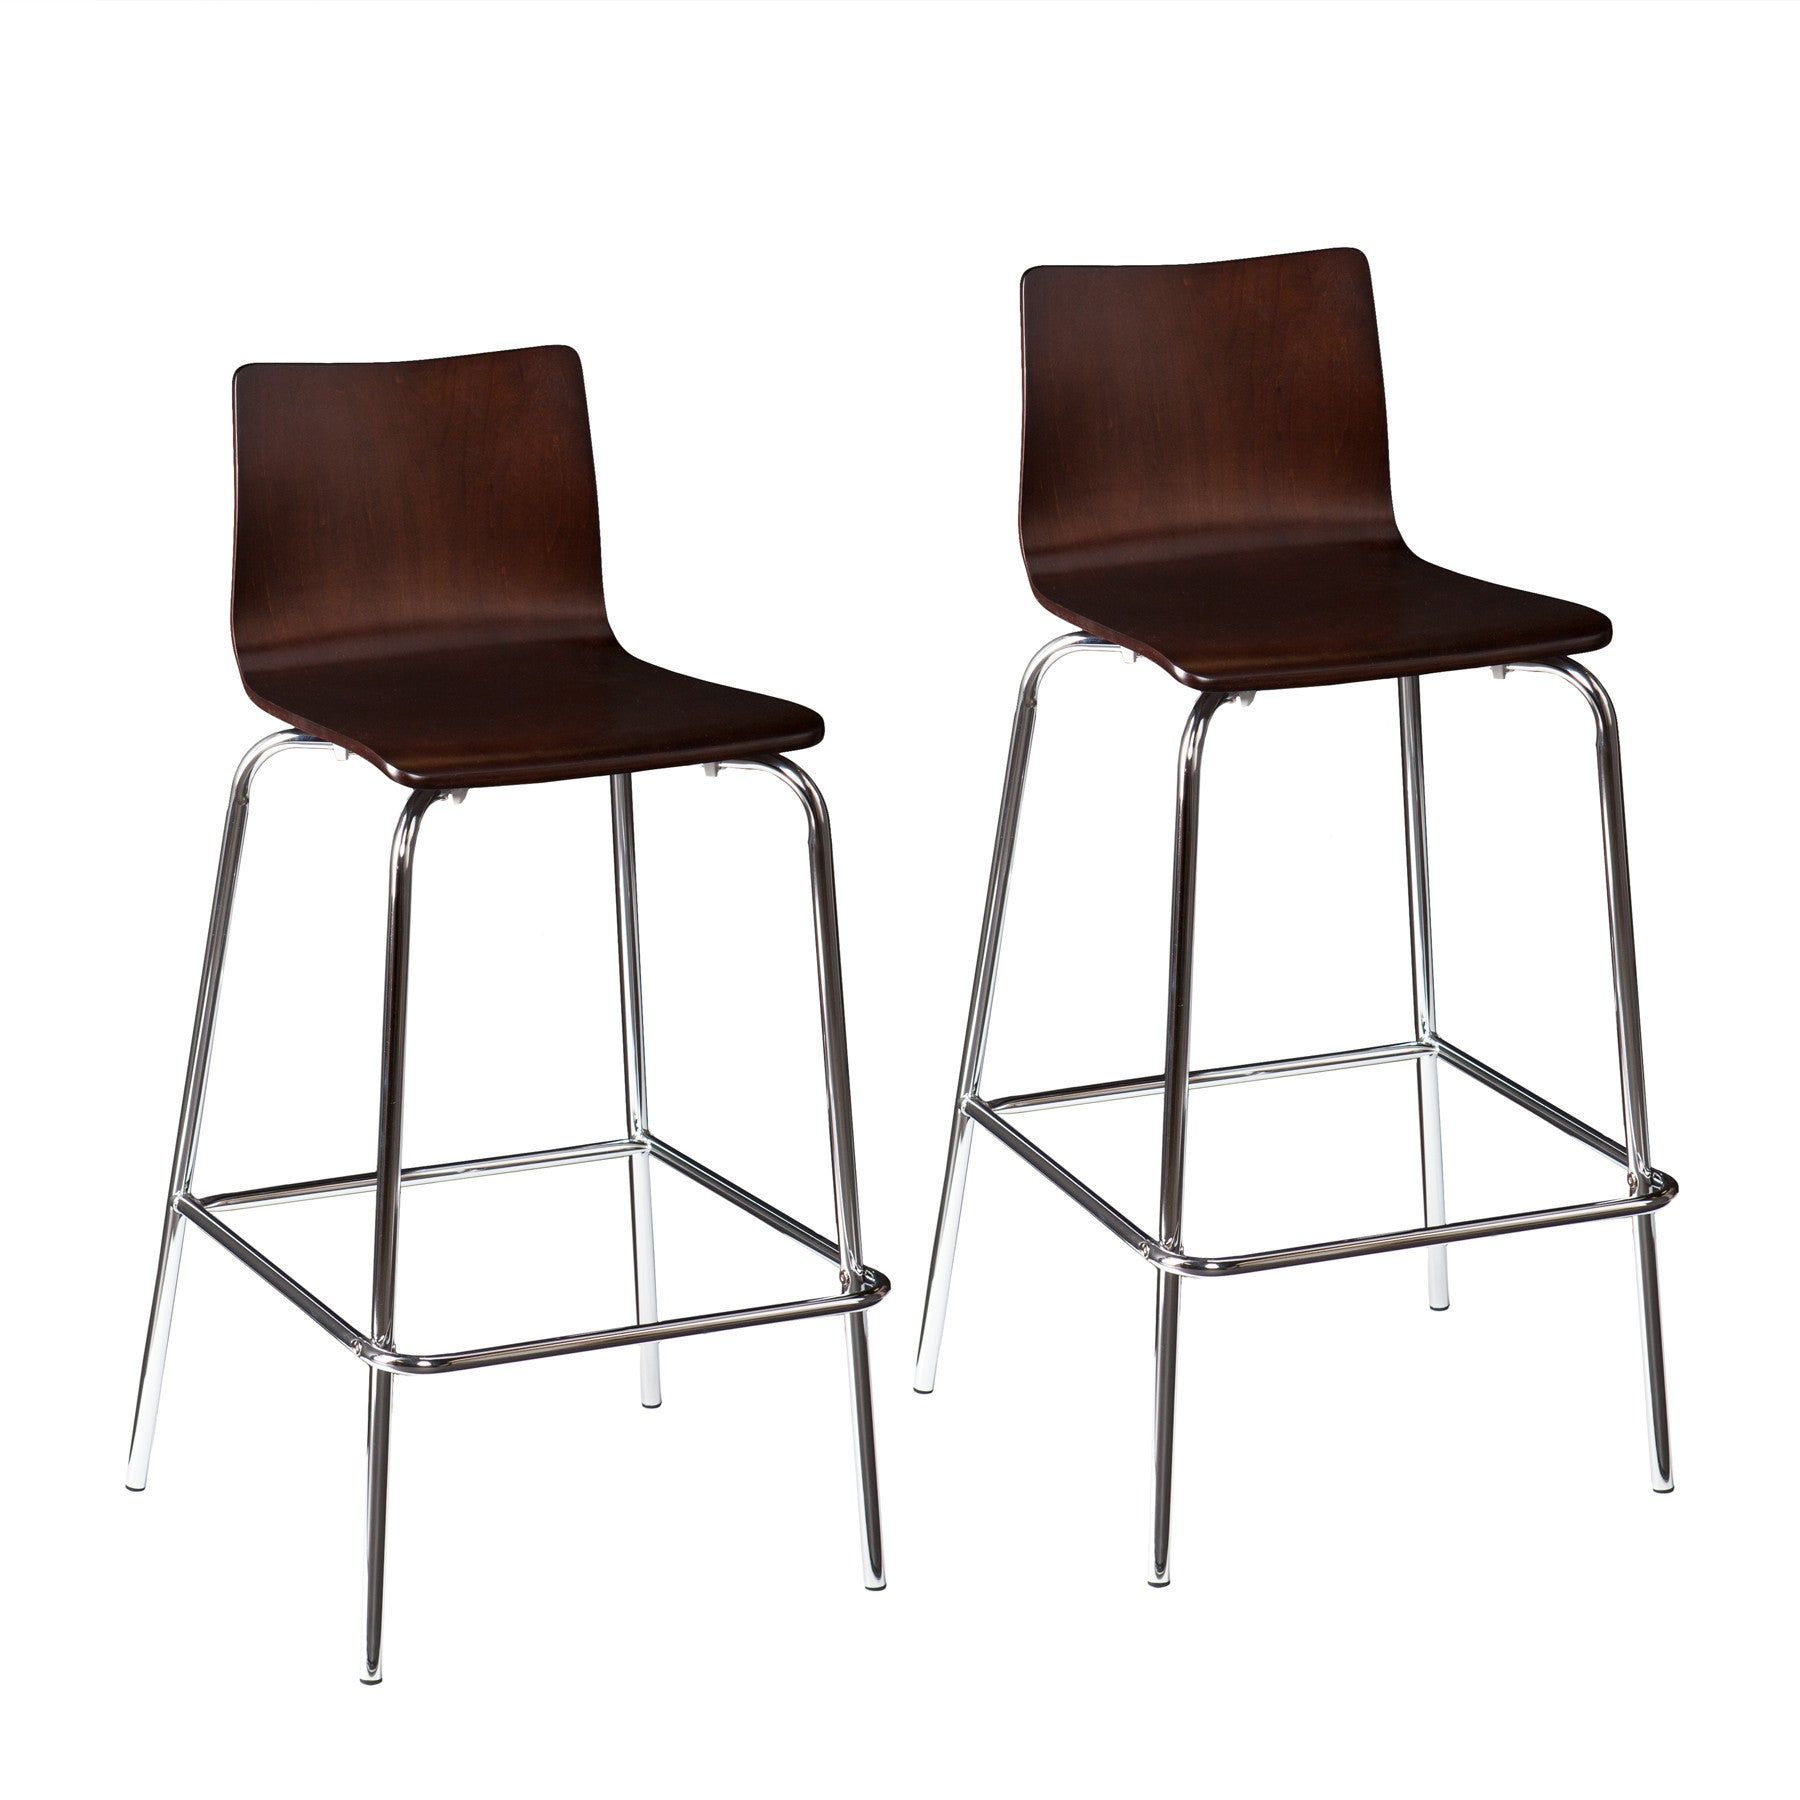 Blence Barstool Espresso (Set of 2)